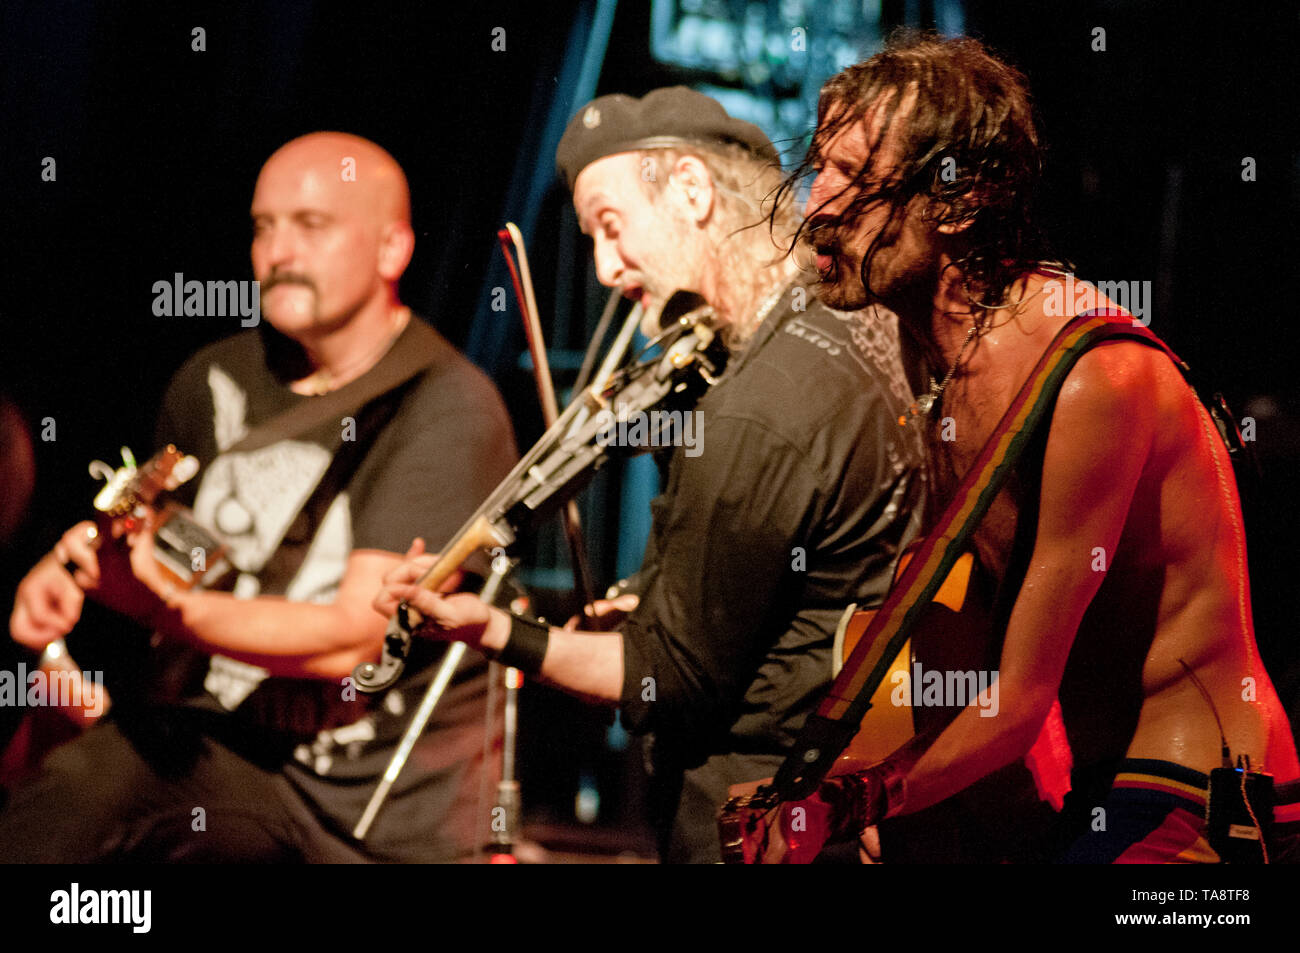 Gypsy Music Stock Photos & Gypsy Music Stock Images - Alamy